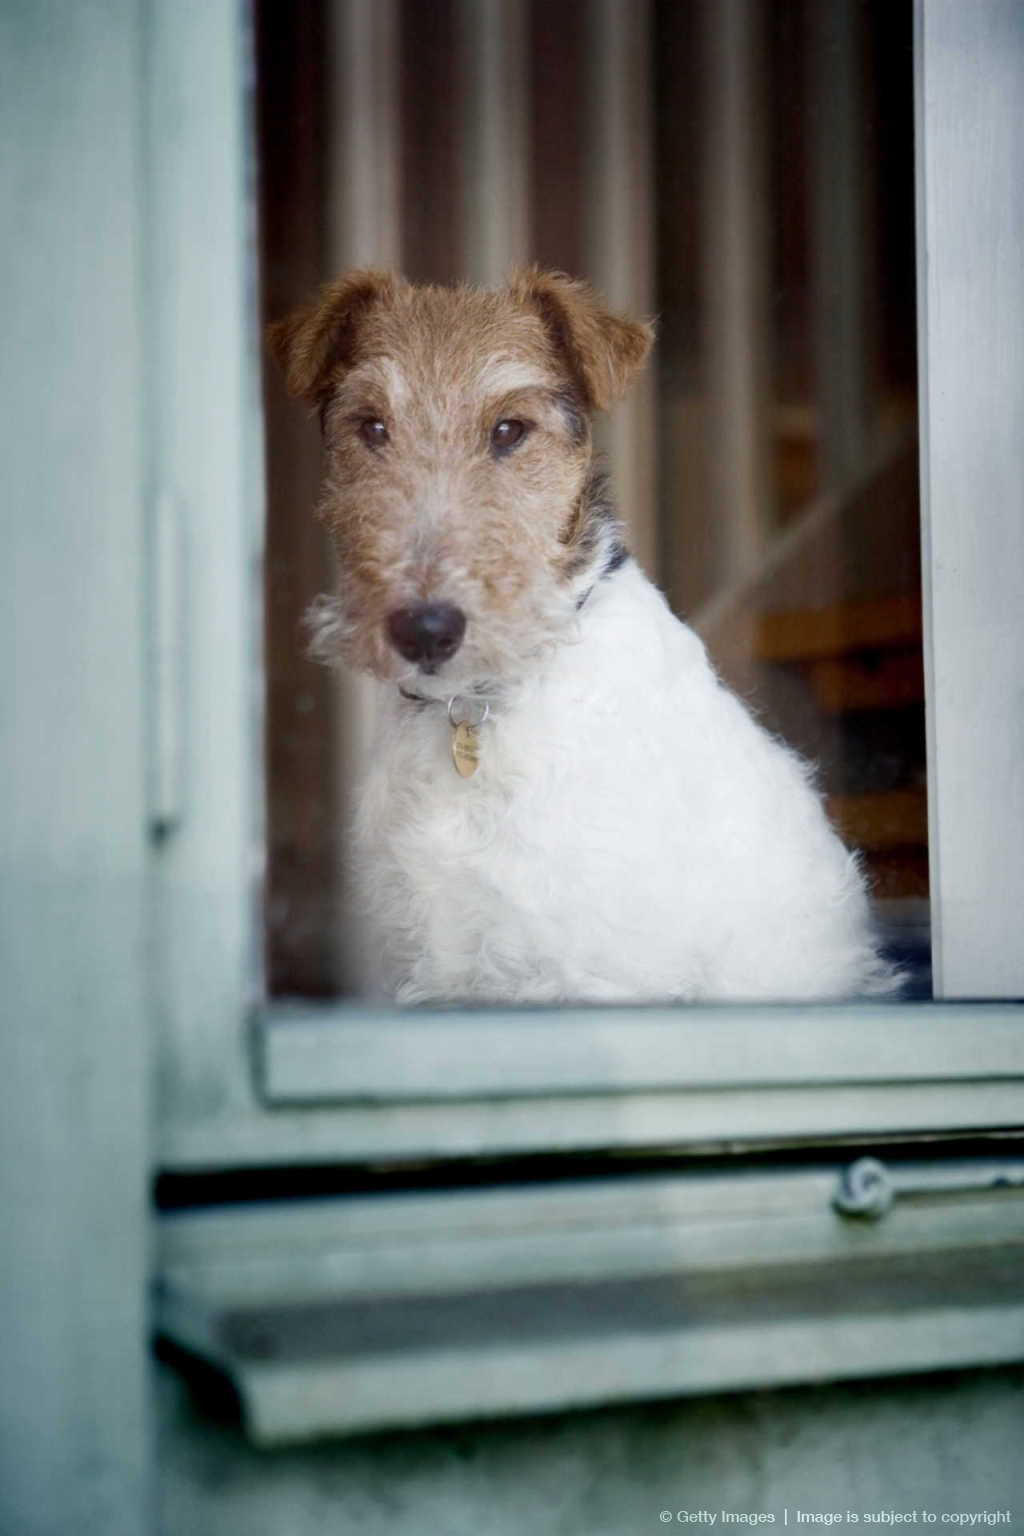 Image detail for -Wire fox terrier by window, view through glass ...